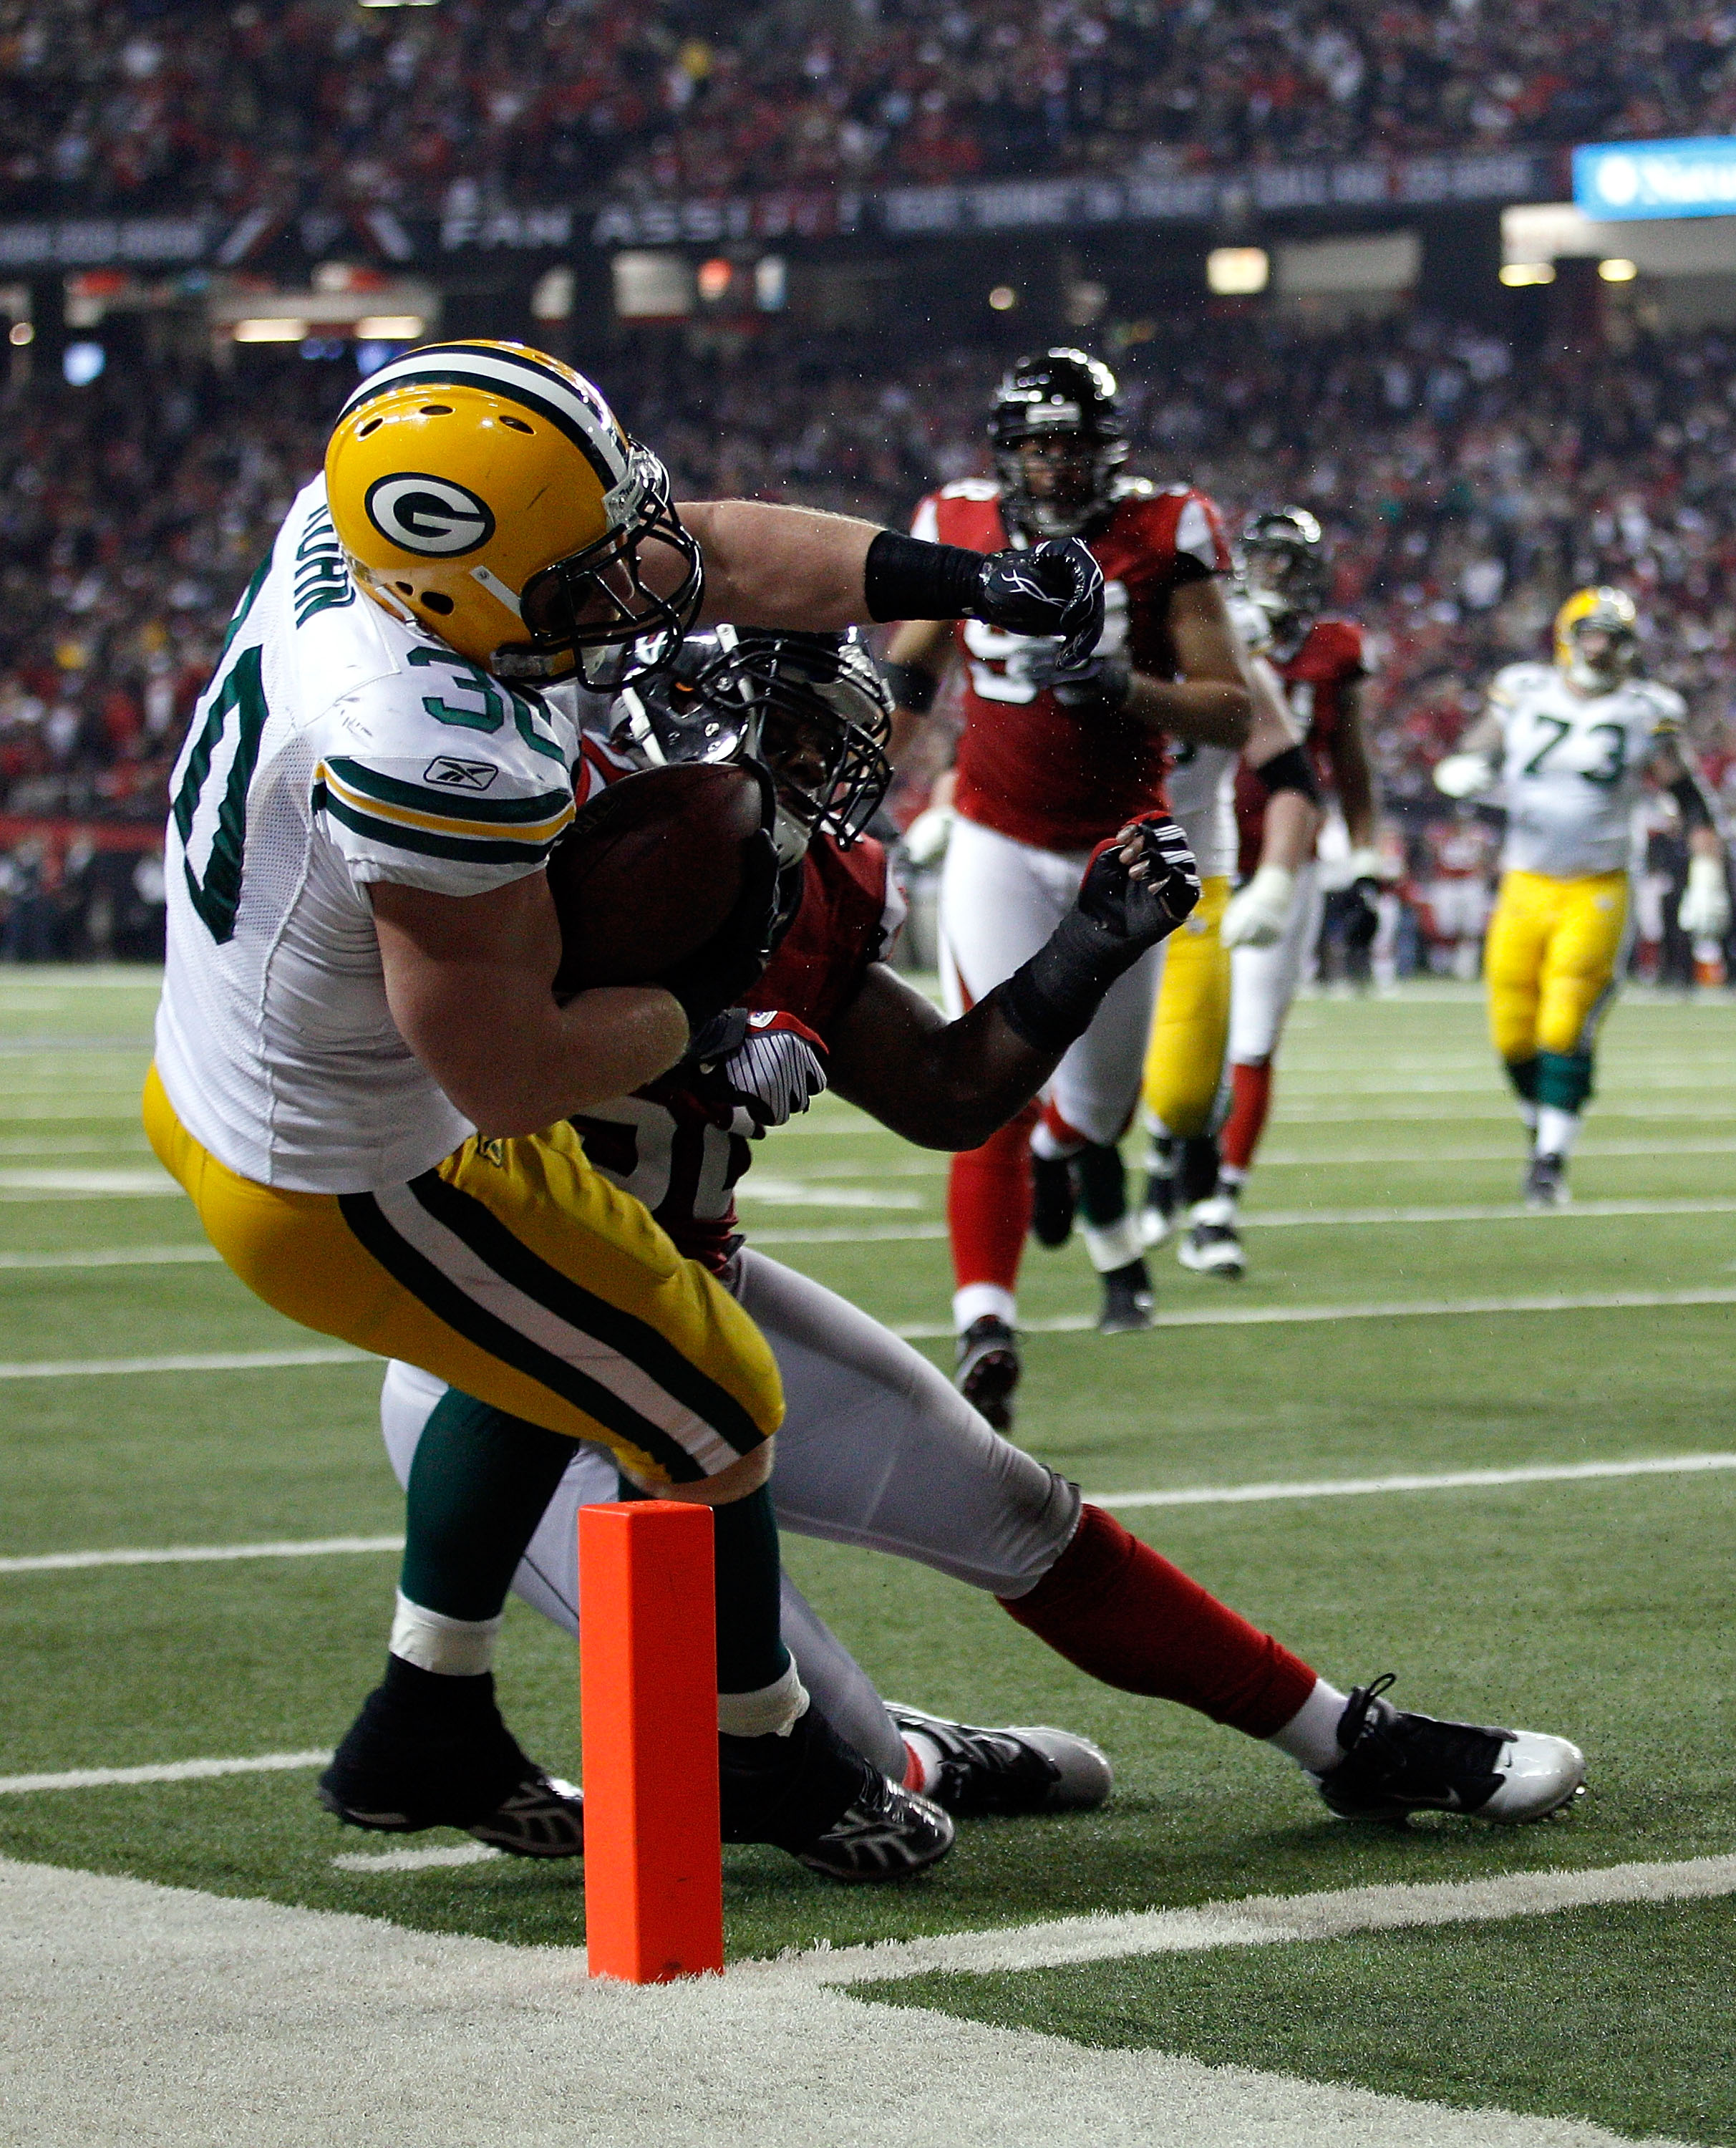 ATLANTA, GA - JANUARY 15:  John Kuhn #30 of the Green Bay Packers scores a 7-yard touchdown reception against the Atlanta Falcons during their 2011 NFC divisional playoff game at Georgia Dome on January 15, 2011 in Atlanta, Georgia.  (Photo by Chris Grayt